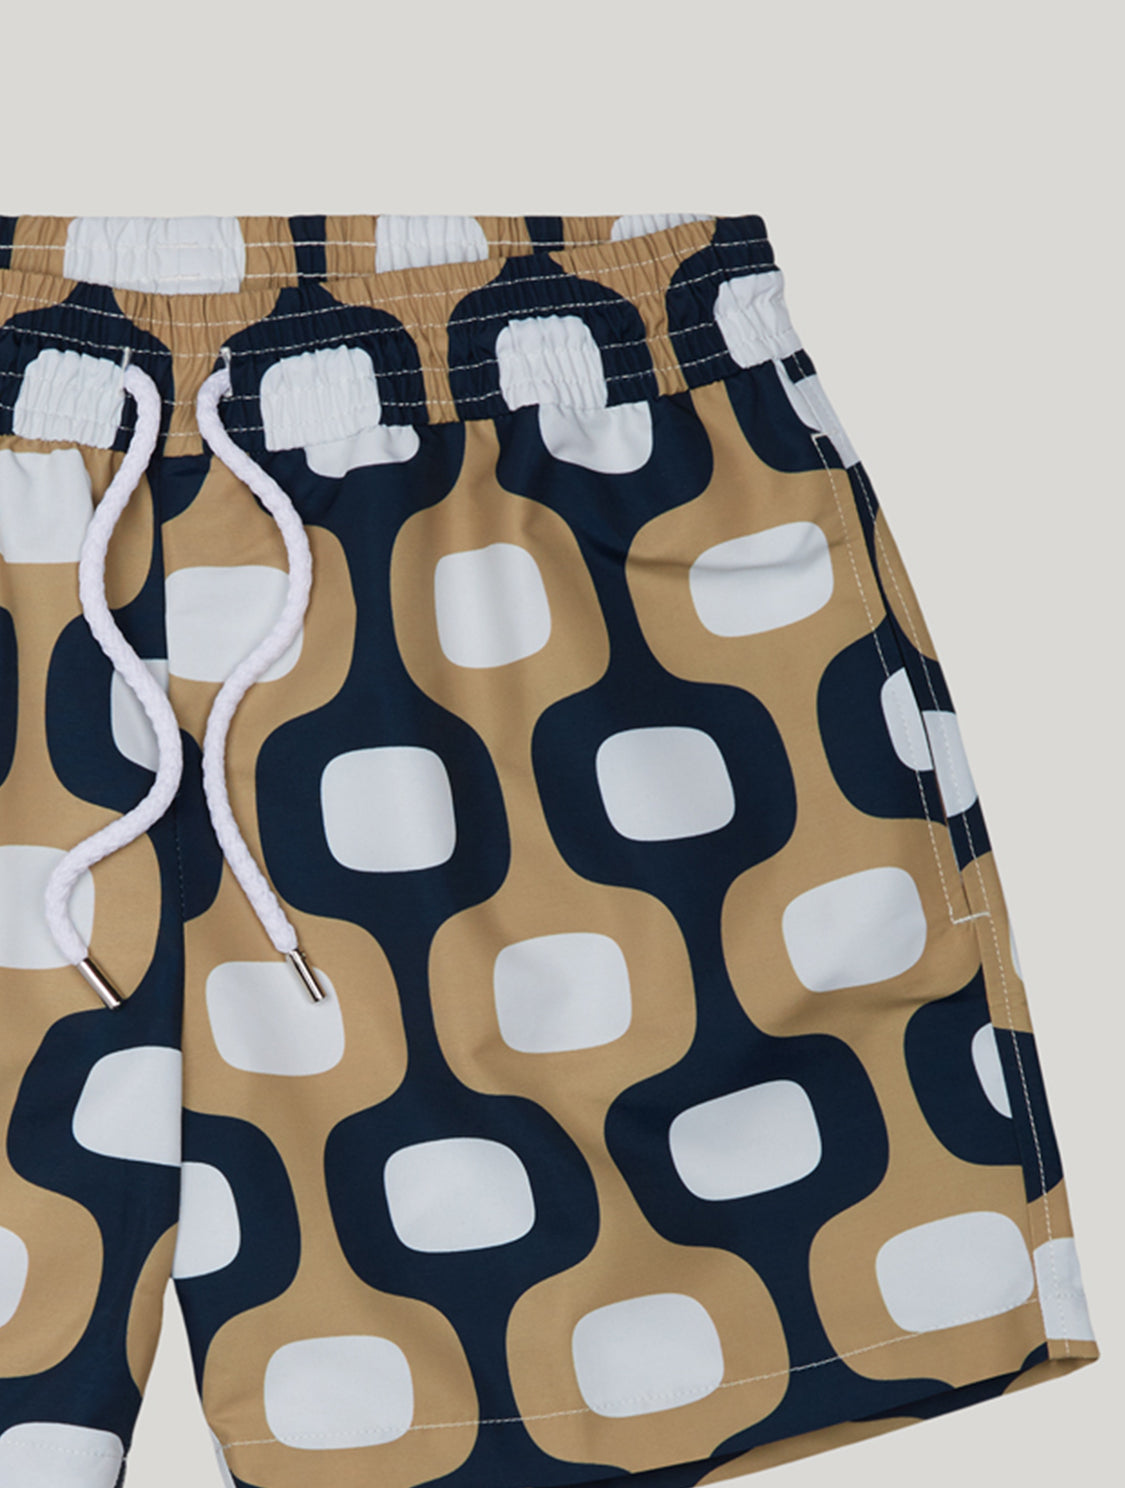 SPORT SWIM SHORTS IPANEMA PRINT